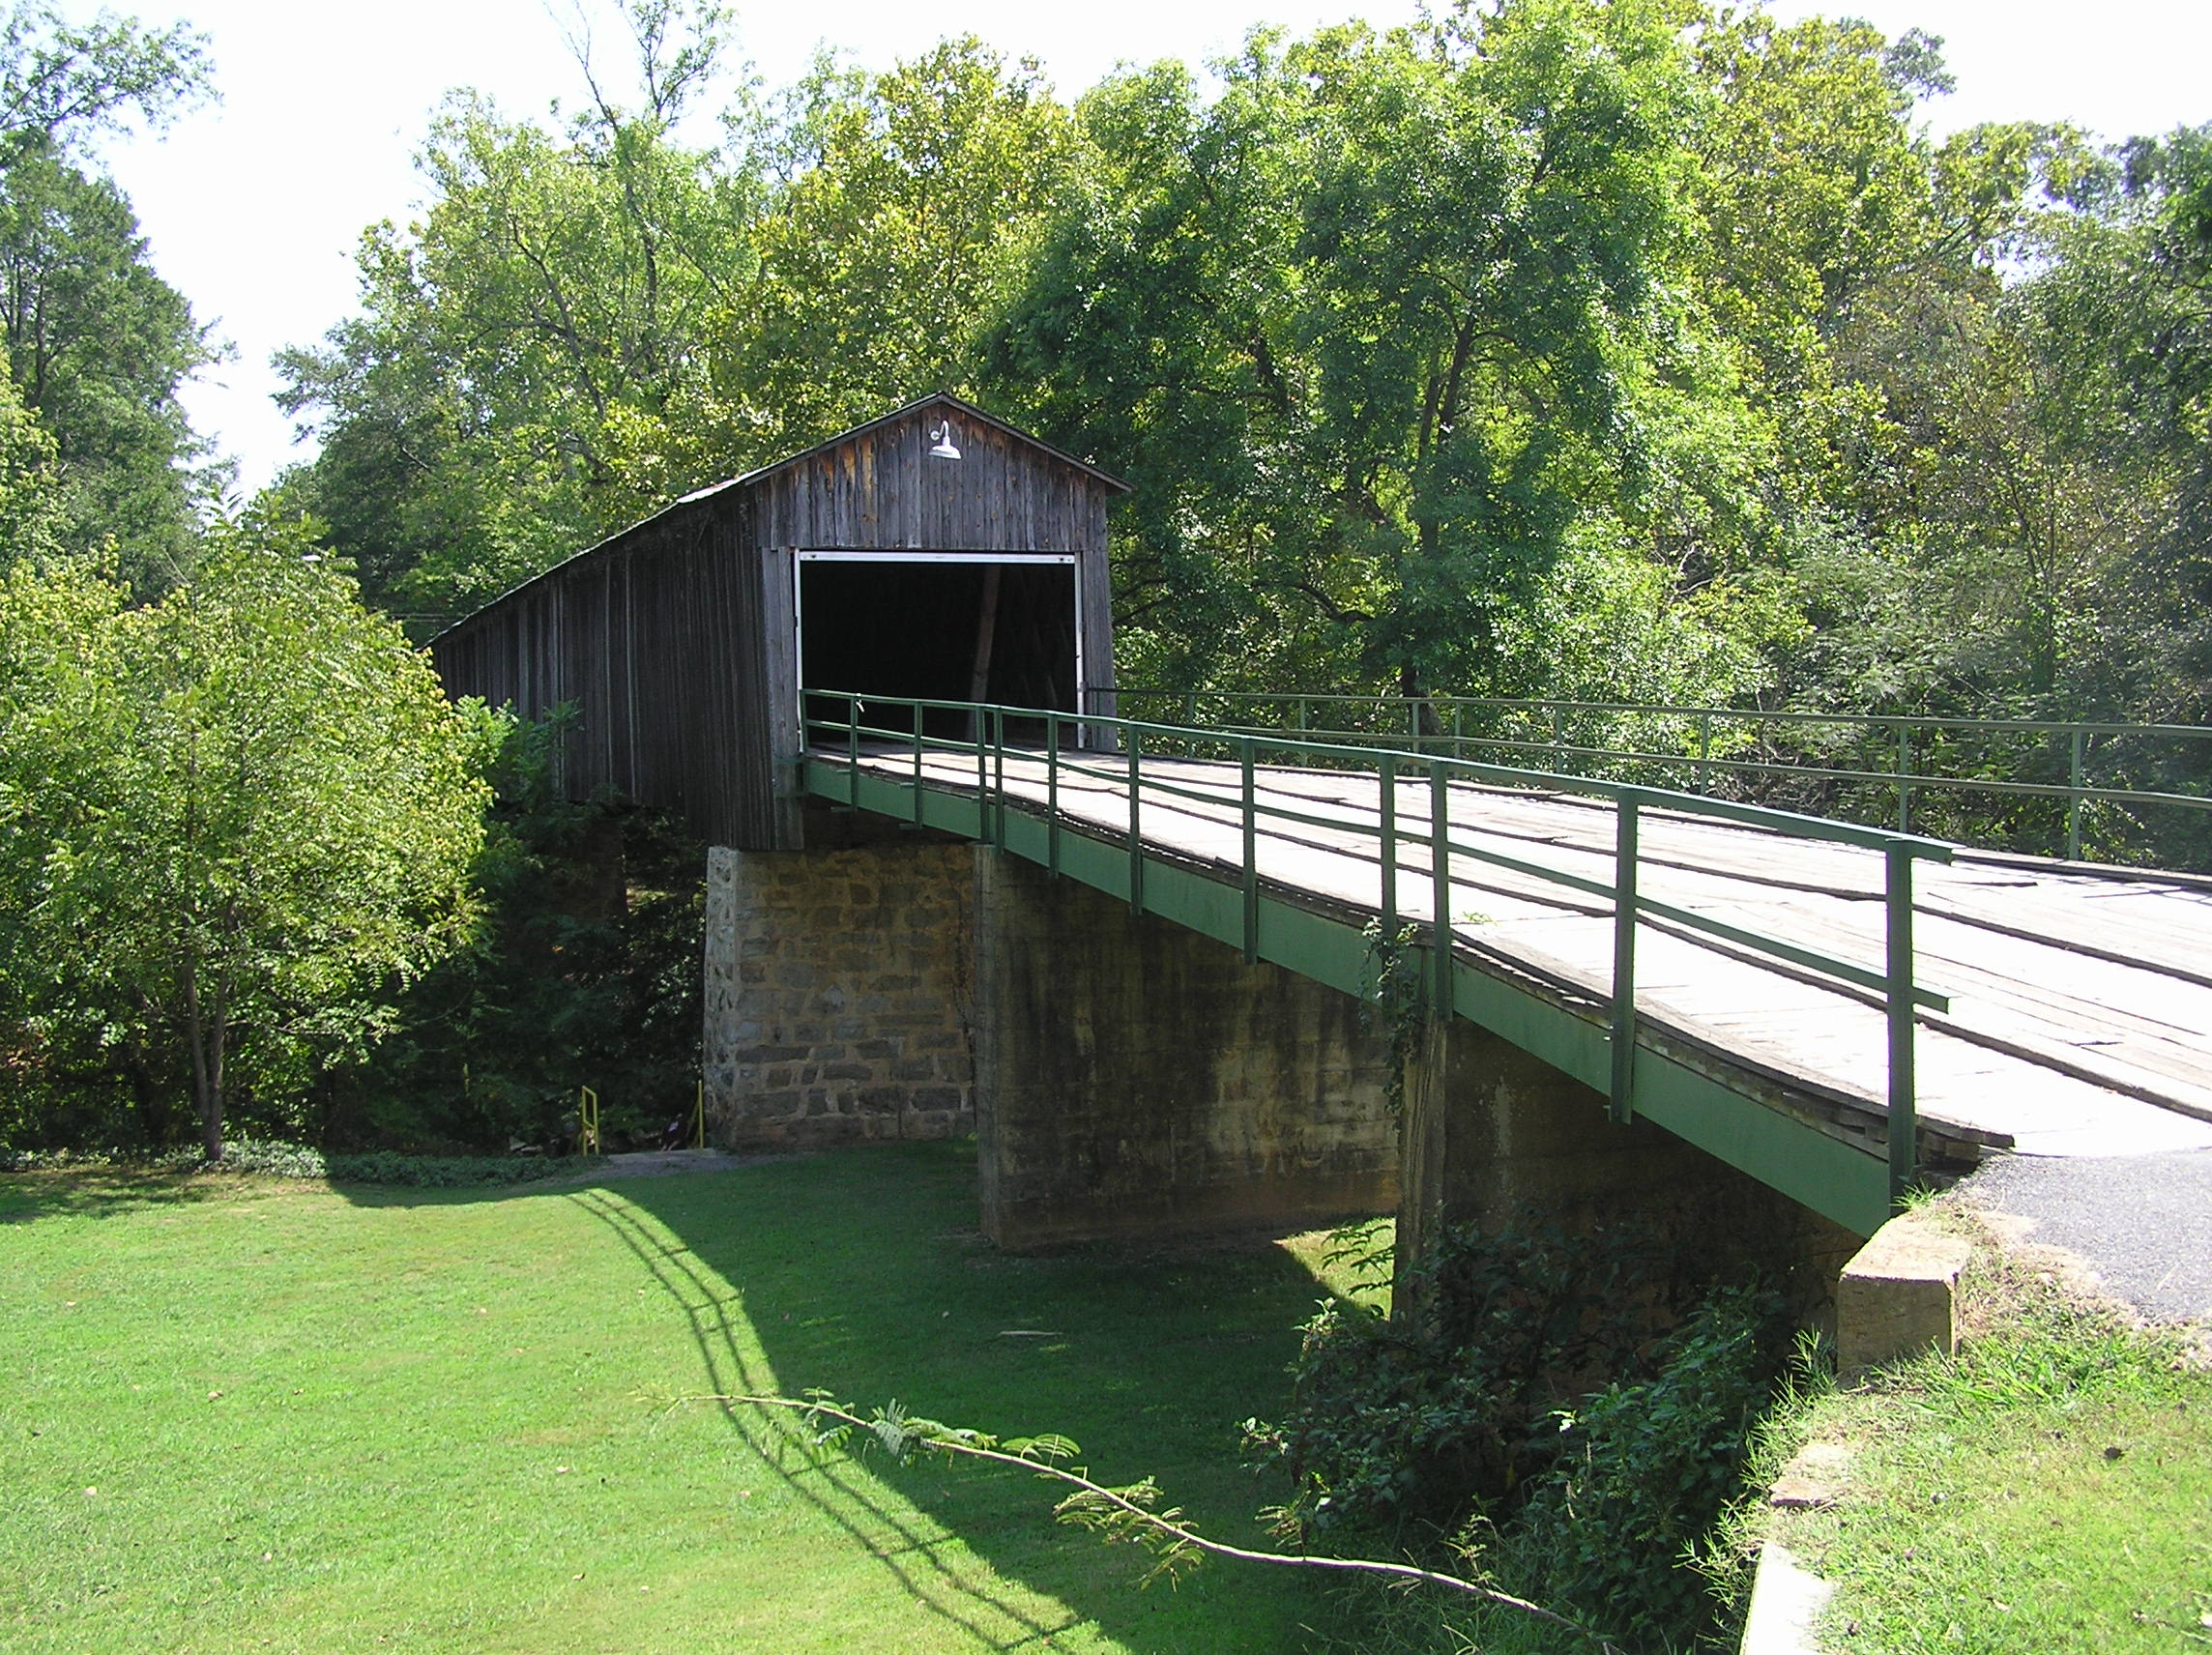 Euharlee Covered Bridge, 1886.